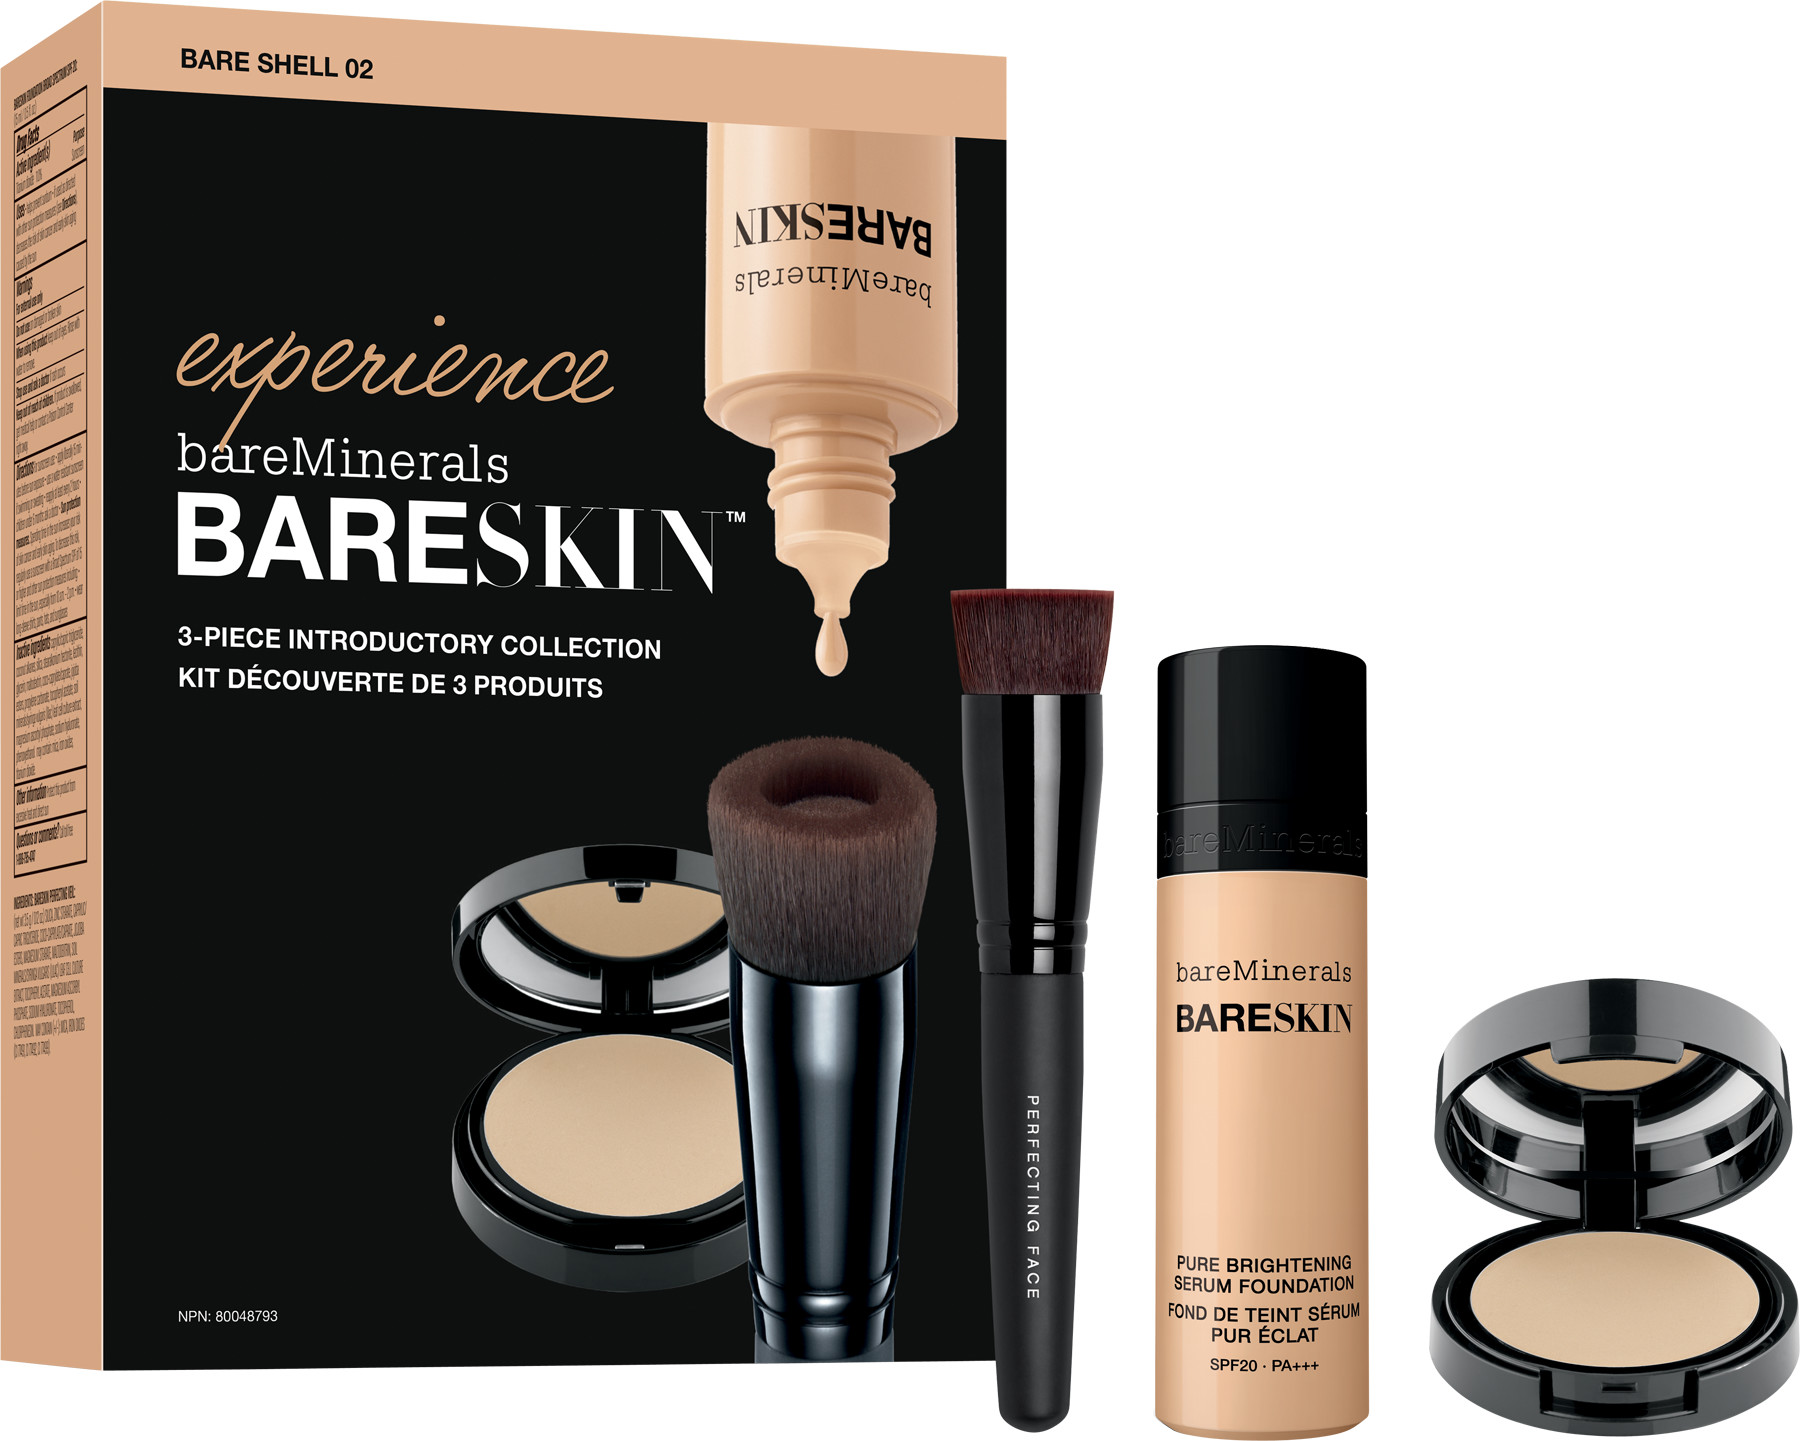 bareminerals_bareskin_3-_piece_introductory_gift_set_02_-_bare_shell_1